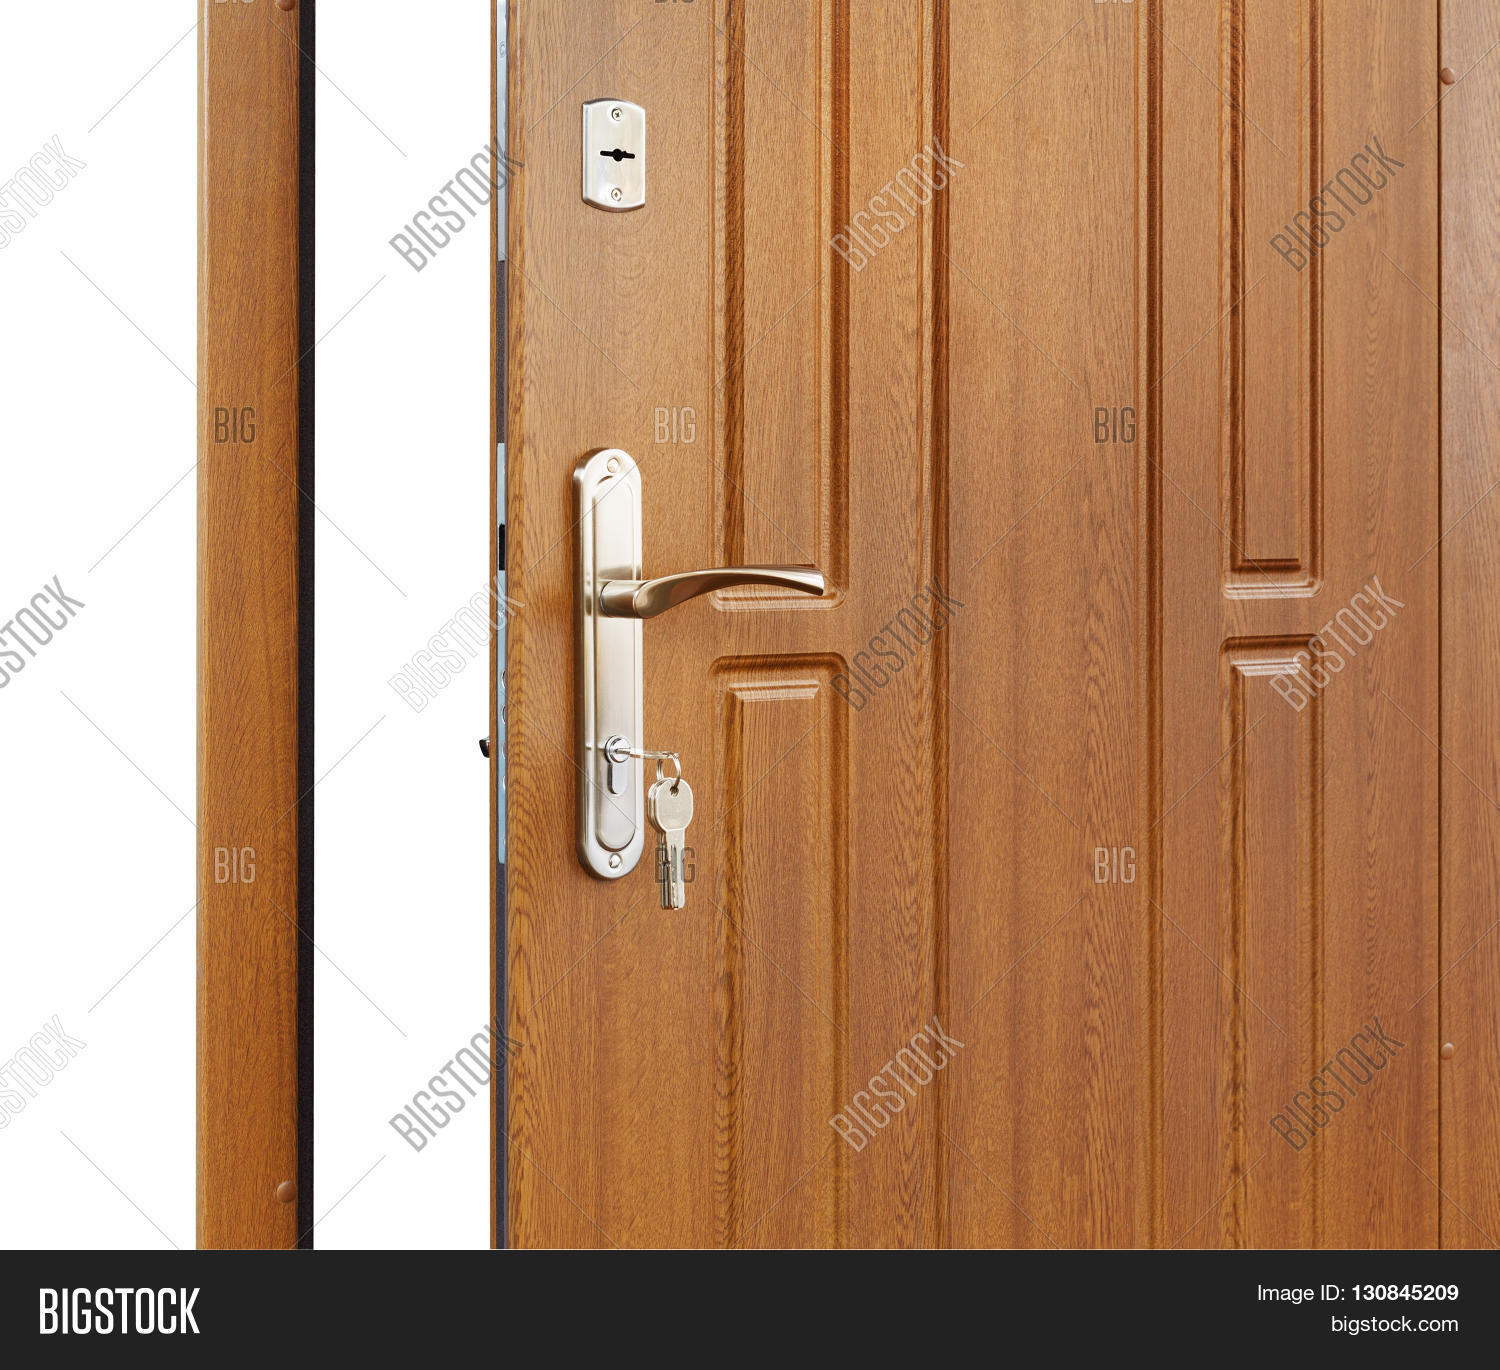 Perfect Open Door Handle. Door Lock With Keys. Brown Wooden Door Closeup Isolated.  Modern